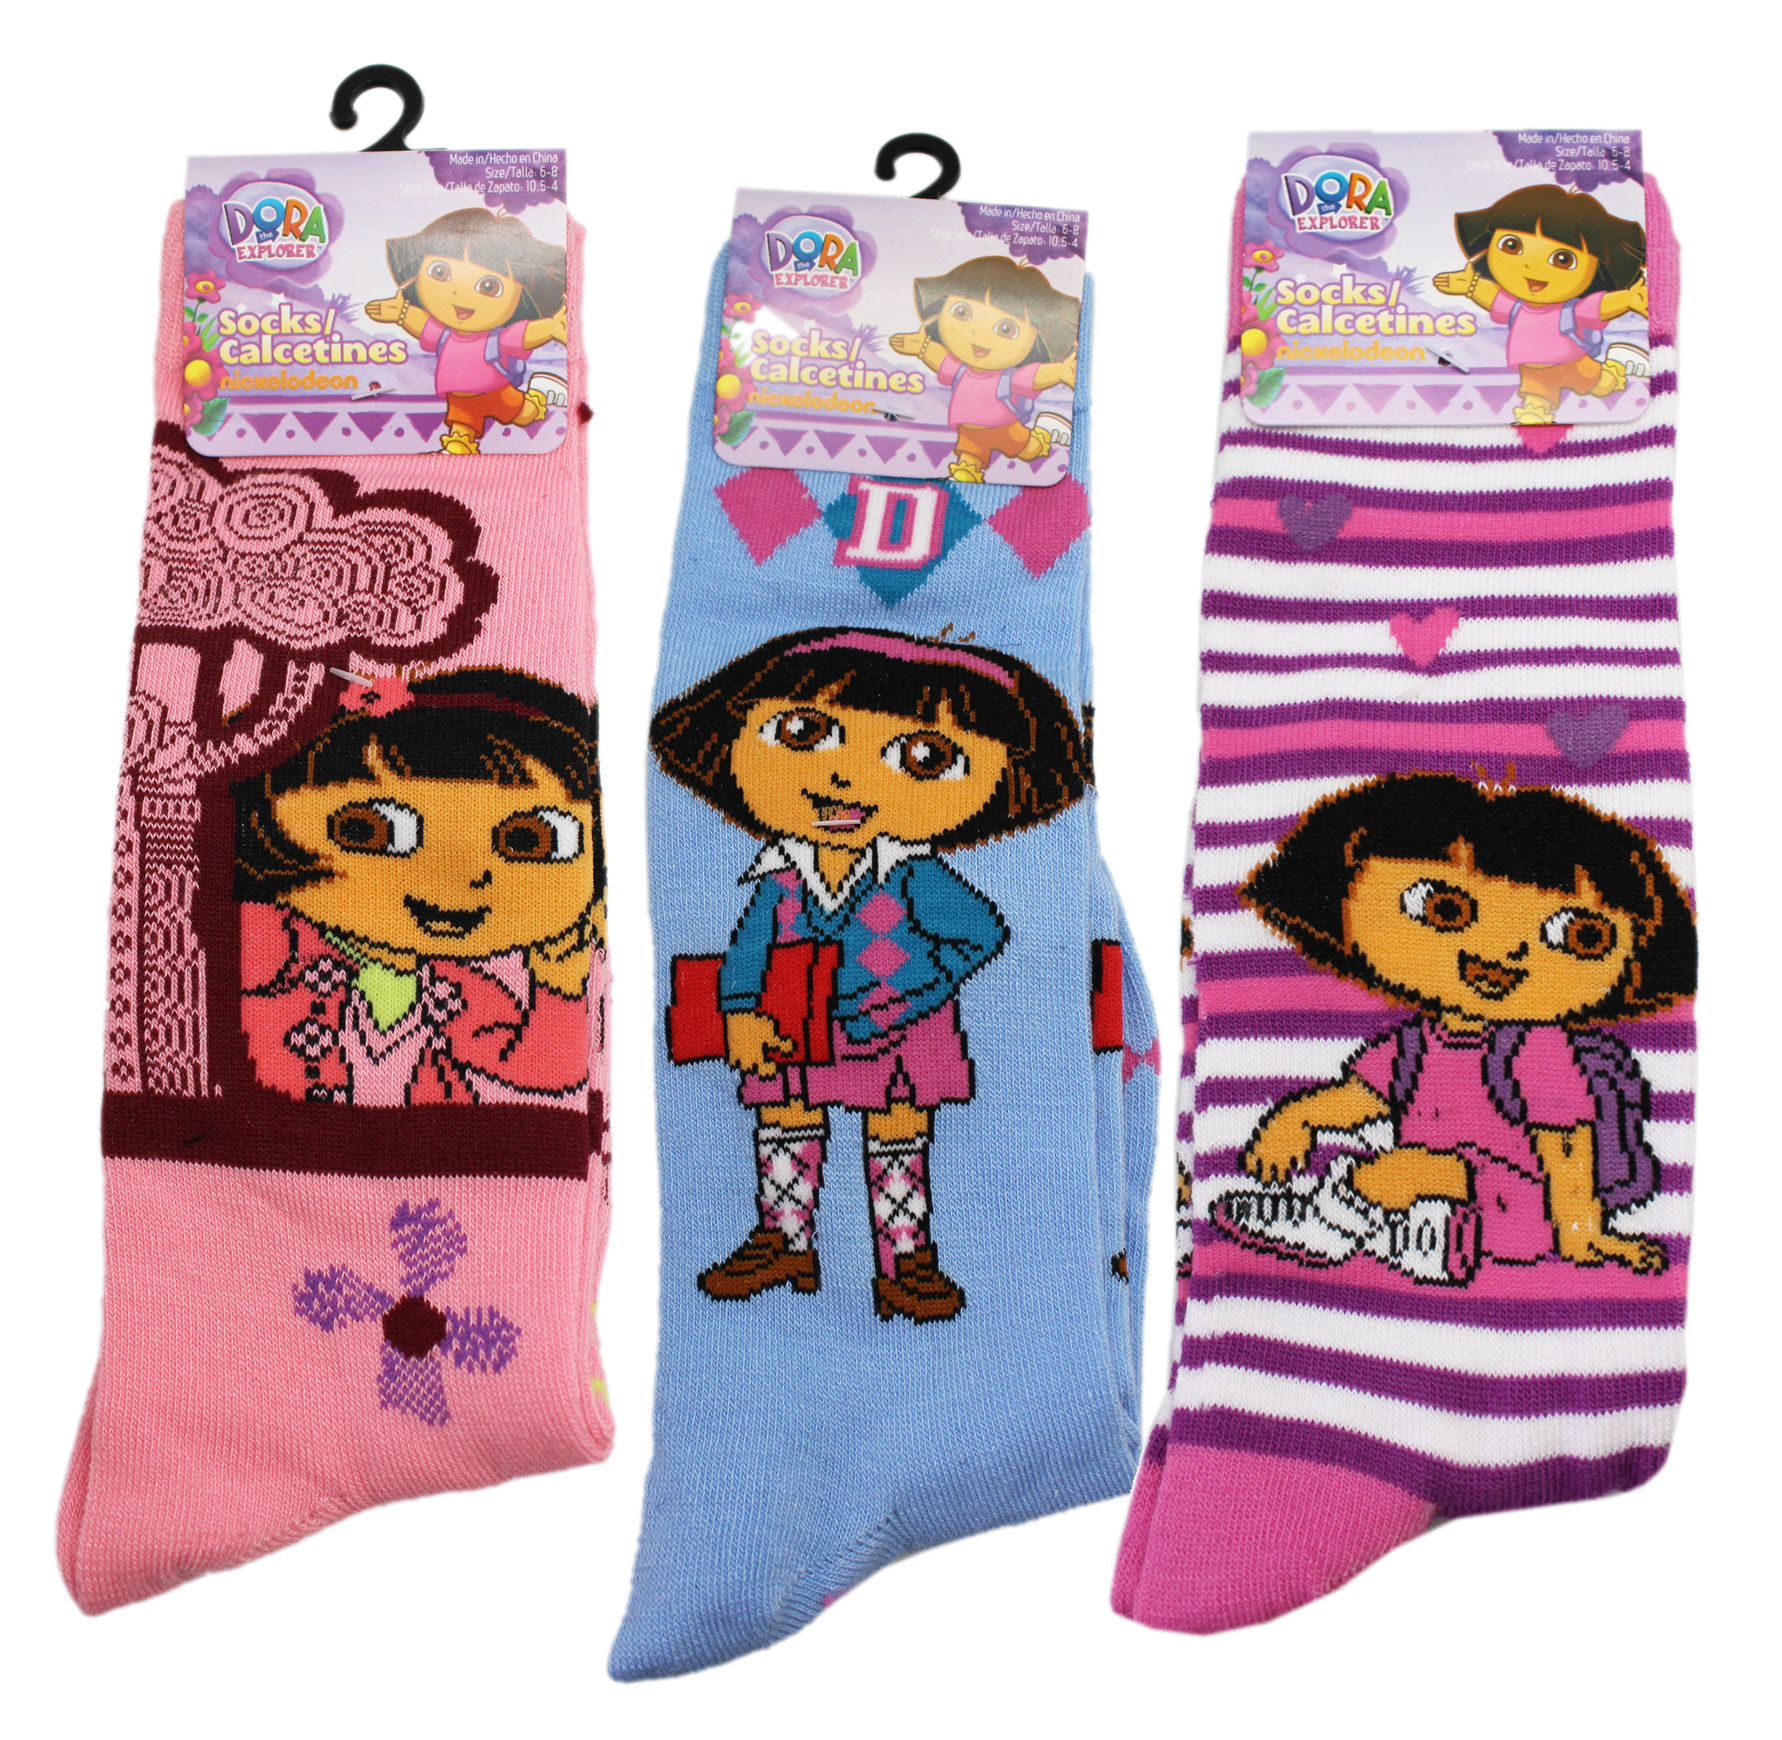 CLEARANCE PRICE DORA THE EXPLORER SOCKS 1 Pair Fits Age 4 to 8 yrs